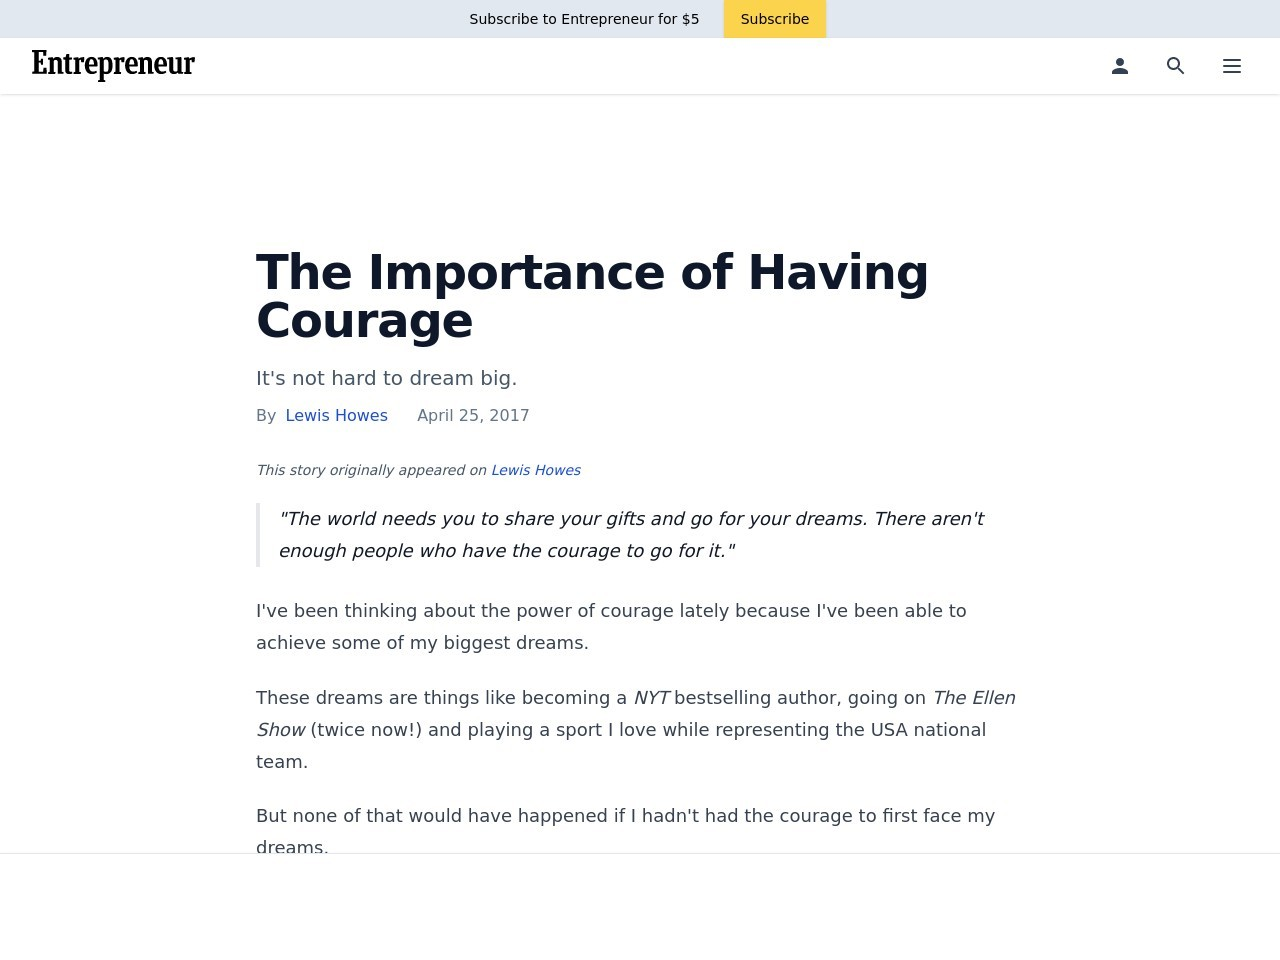 The Importance of Having Courage